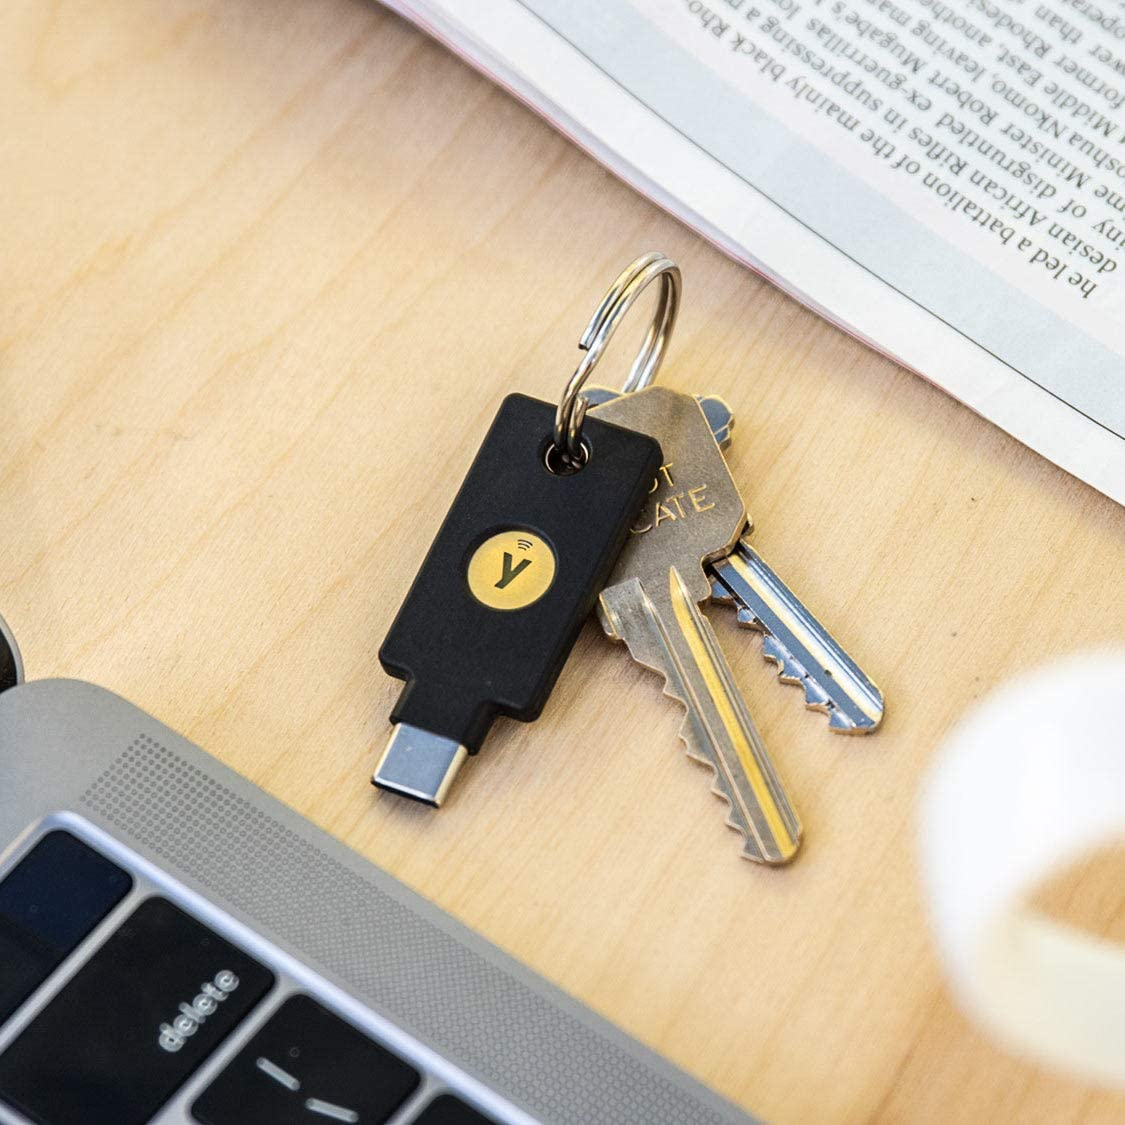 YubiKey 5C NFC Fits USB-C Ports and Works with Supported NFC Mobile Devices Protect Your Online Accounts with More Than a Password Two Factor Authentication USB and NFC Security Key Yubico